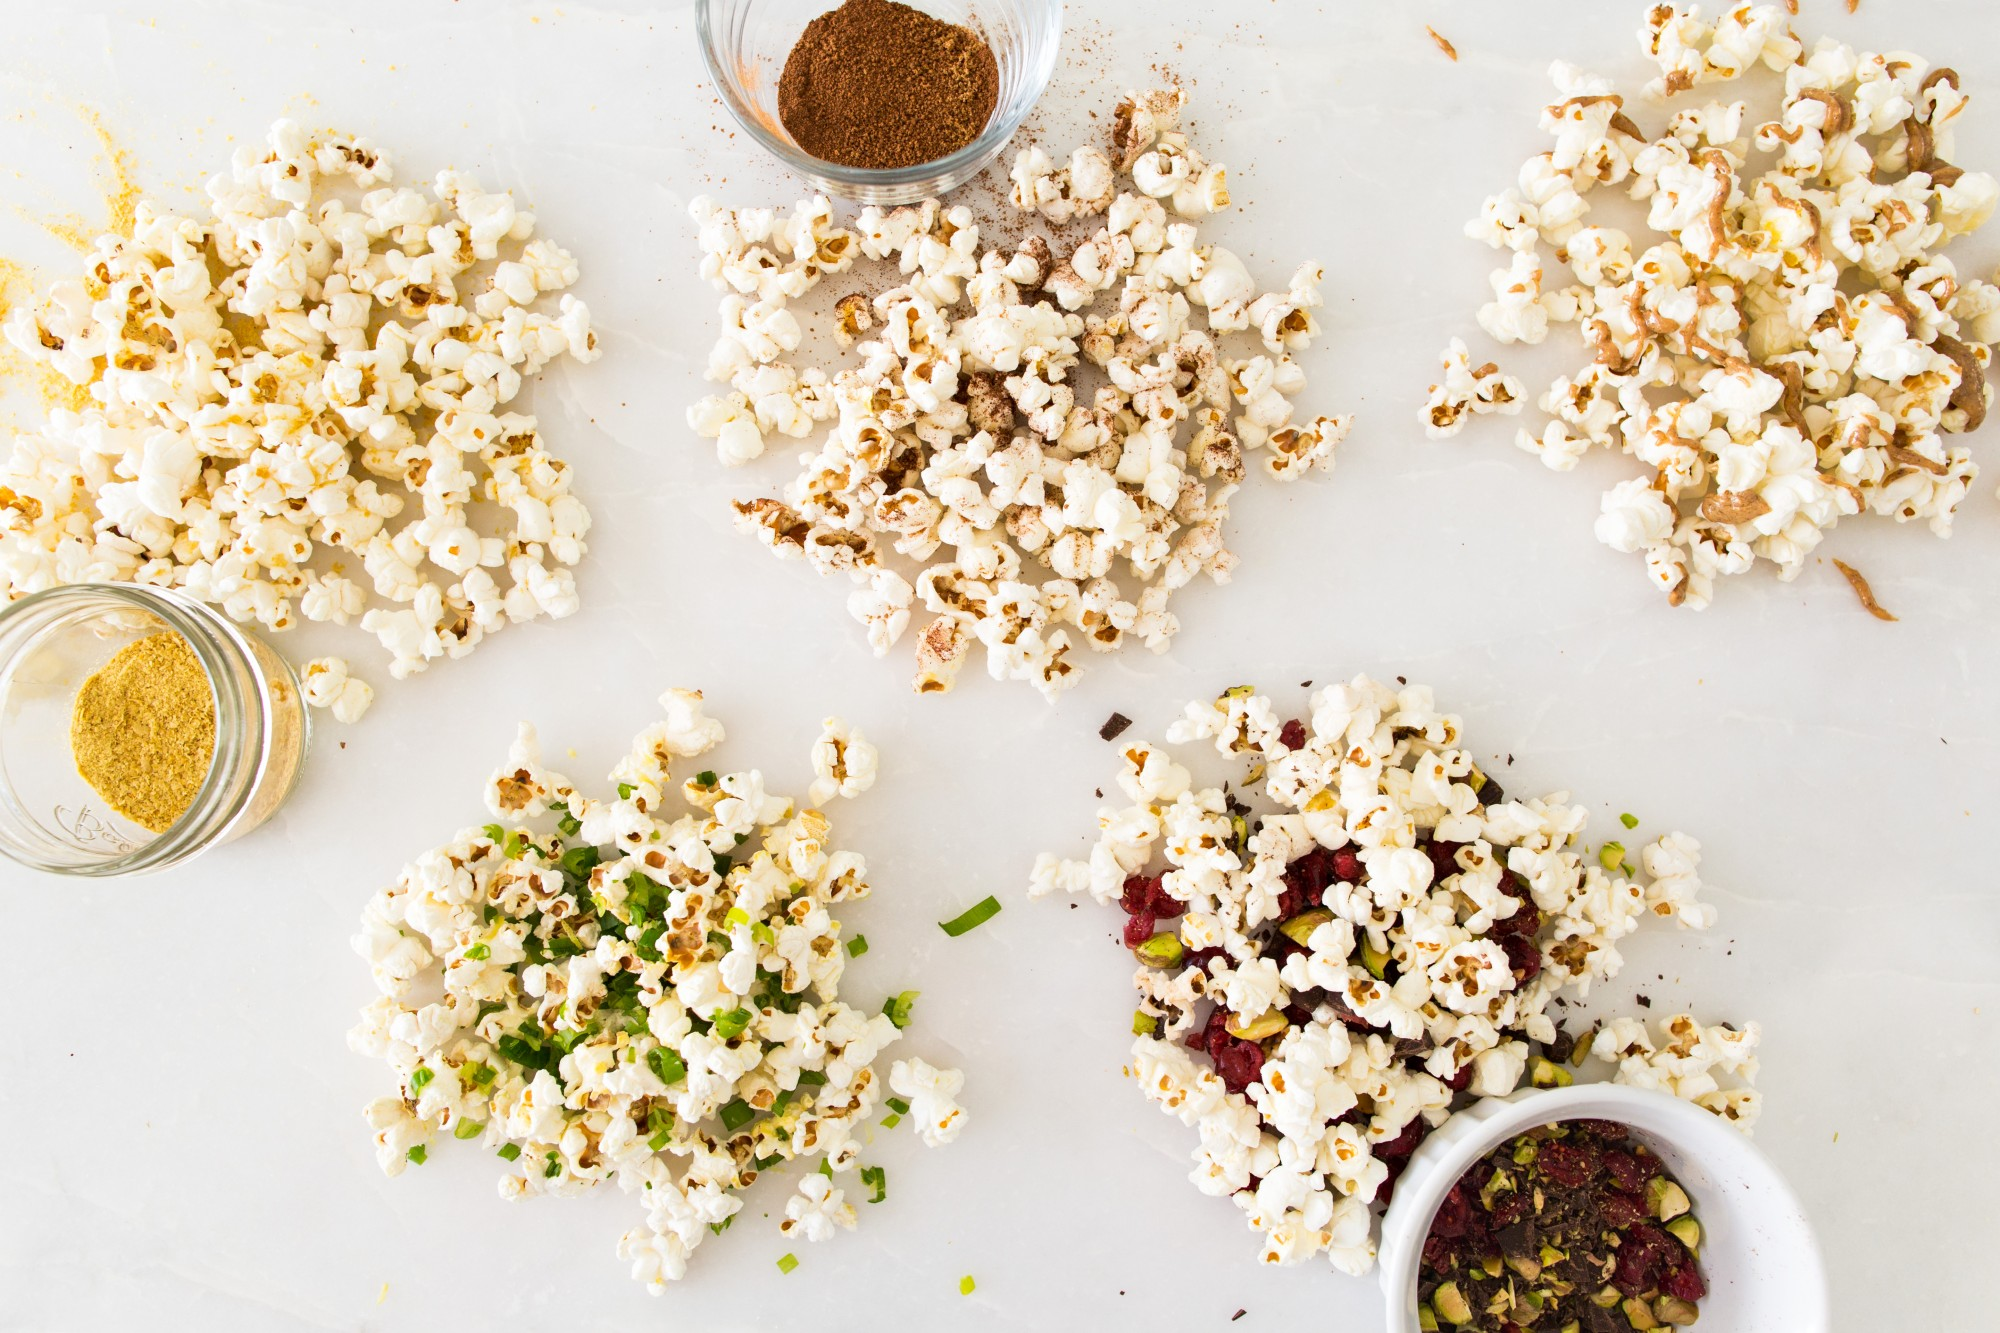 healthy-popcorn-variation-tiu-2.jpg